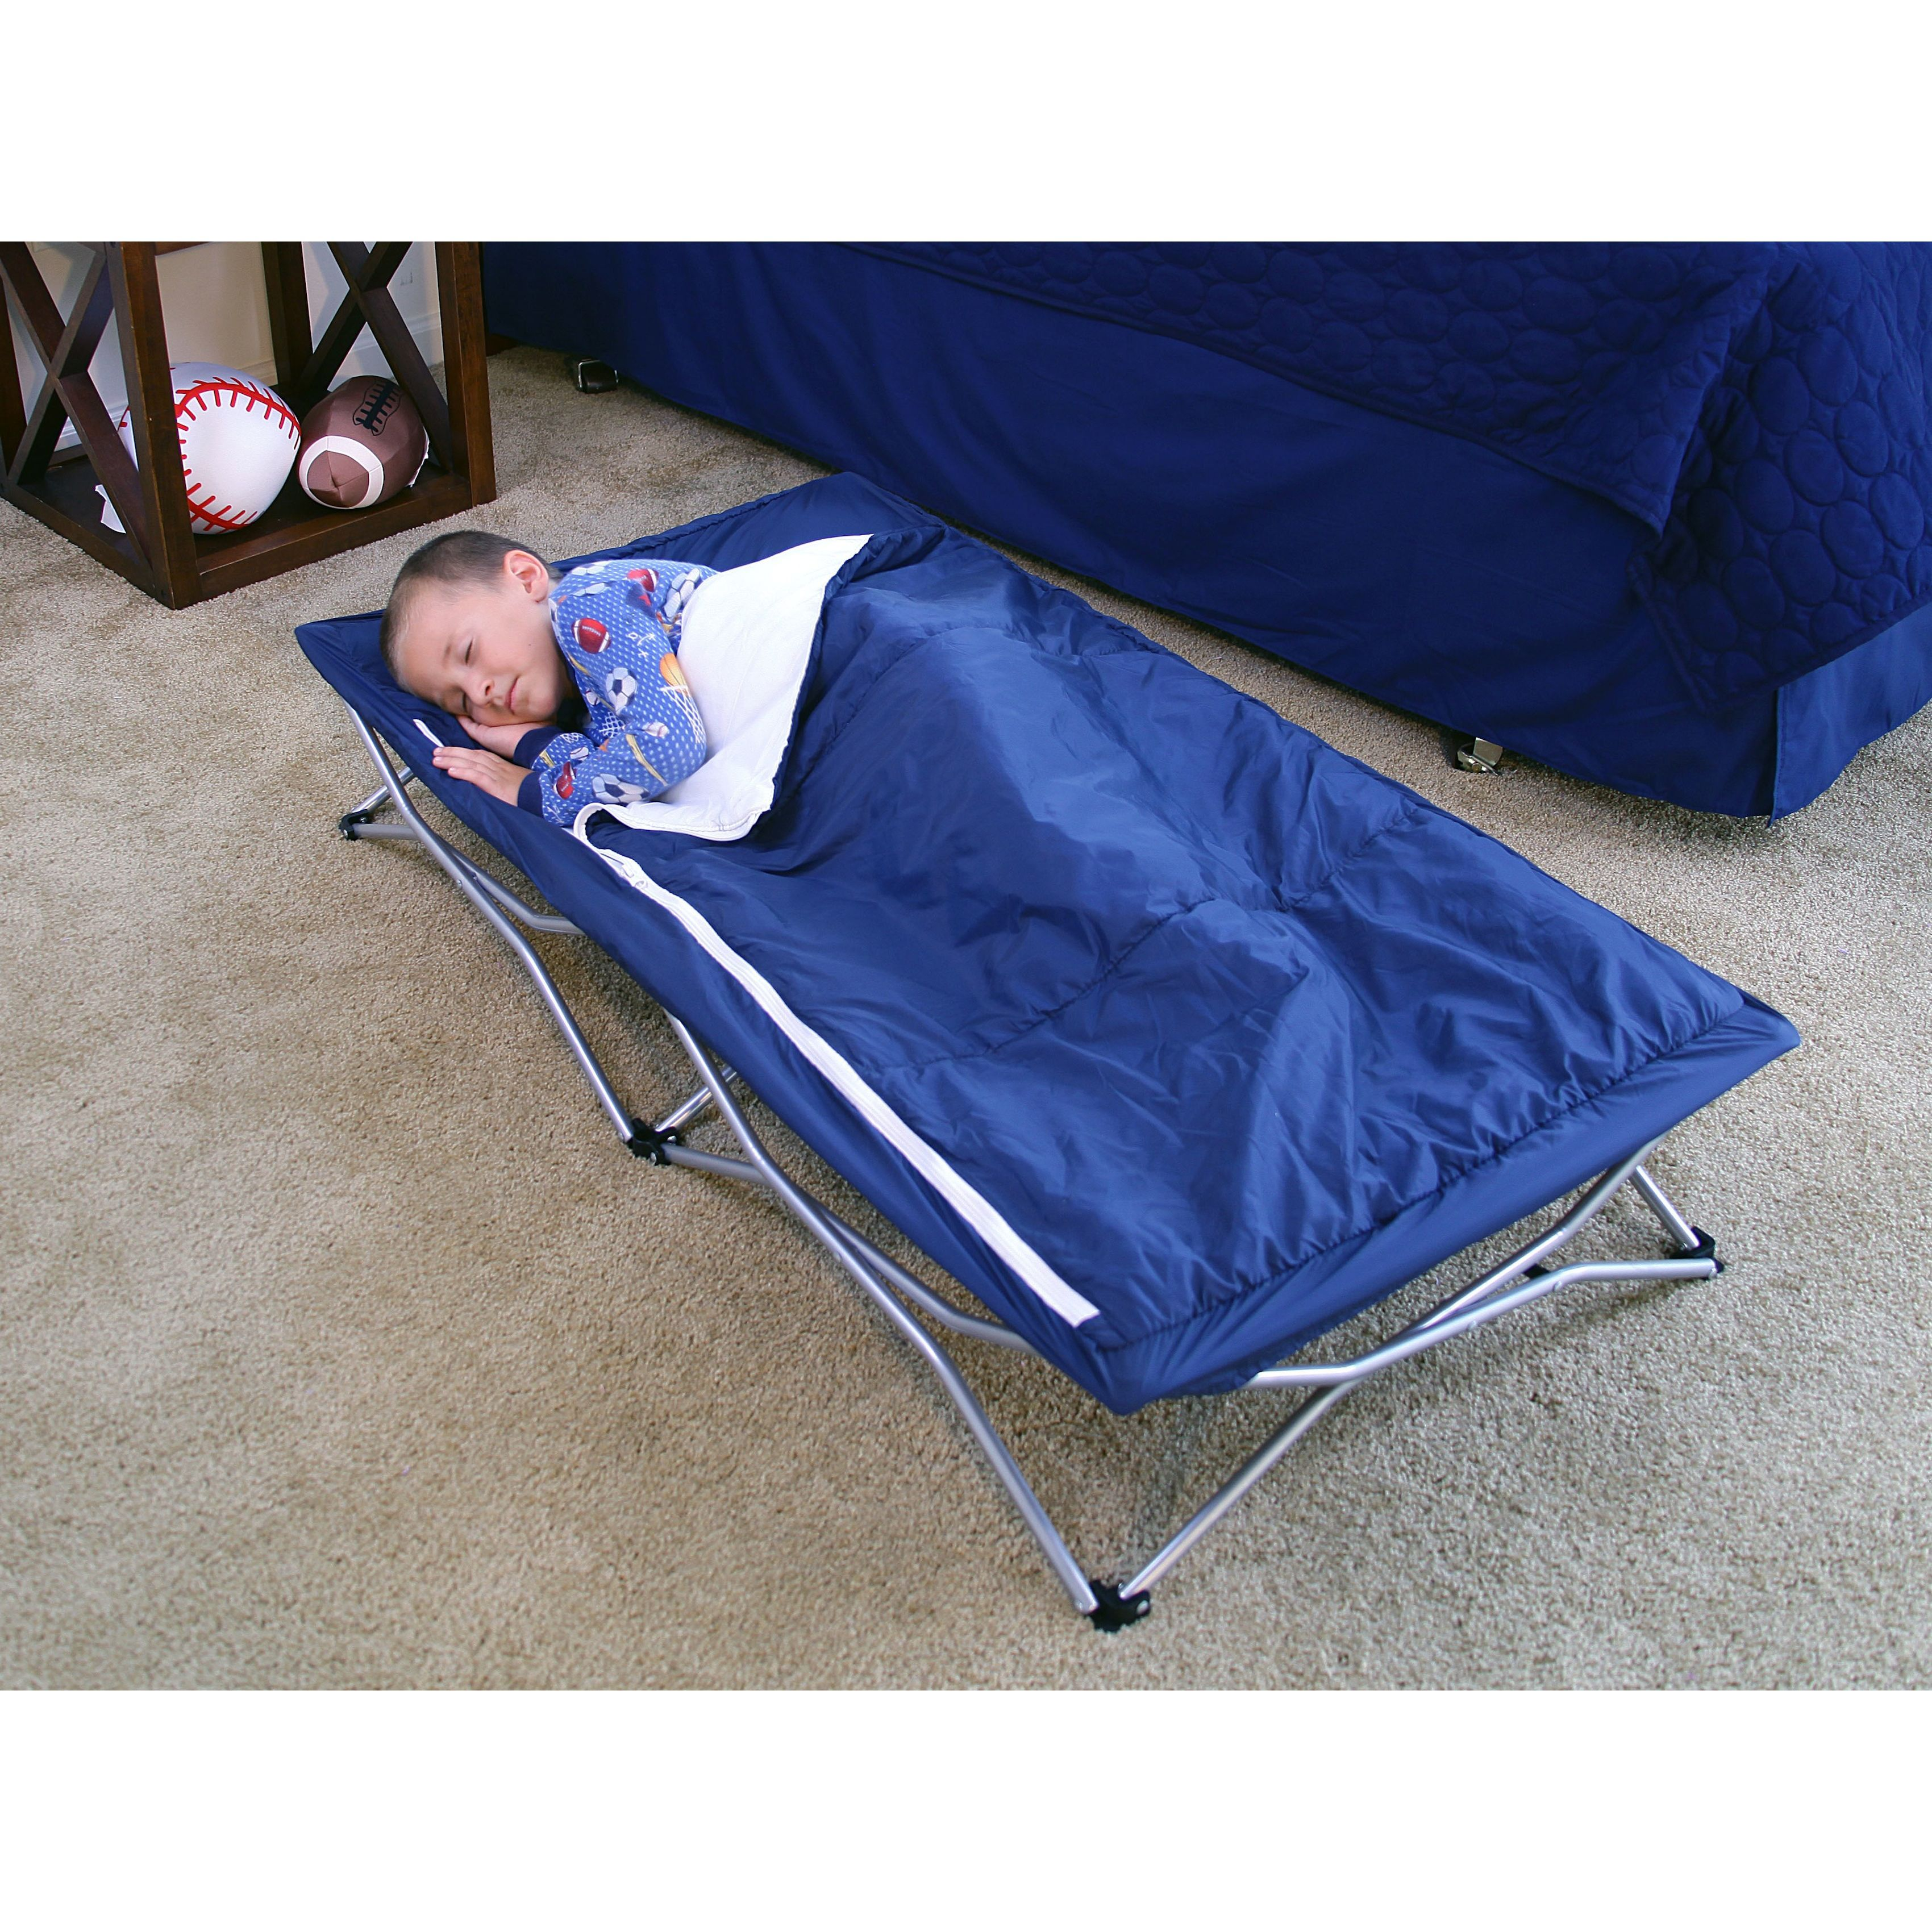 The Regalo My Cot Deluxe is a child-size portable sleeping cot with multiple uses. It's great for the home, grandma's house, sleepovers, camping, the beach or daycare and features a durable all steel frame with reinforced canvas bed liner.  Omg I want this